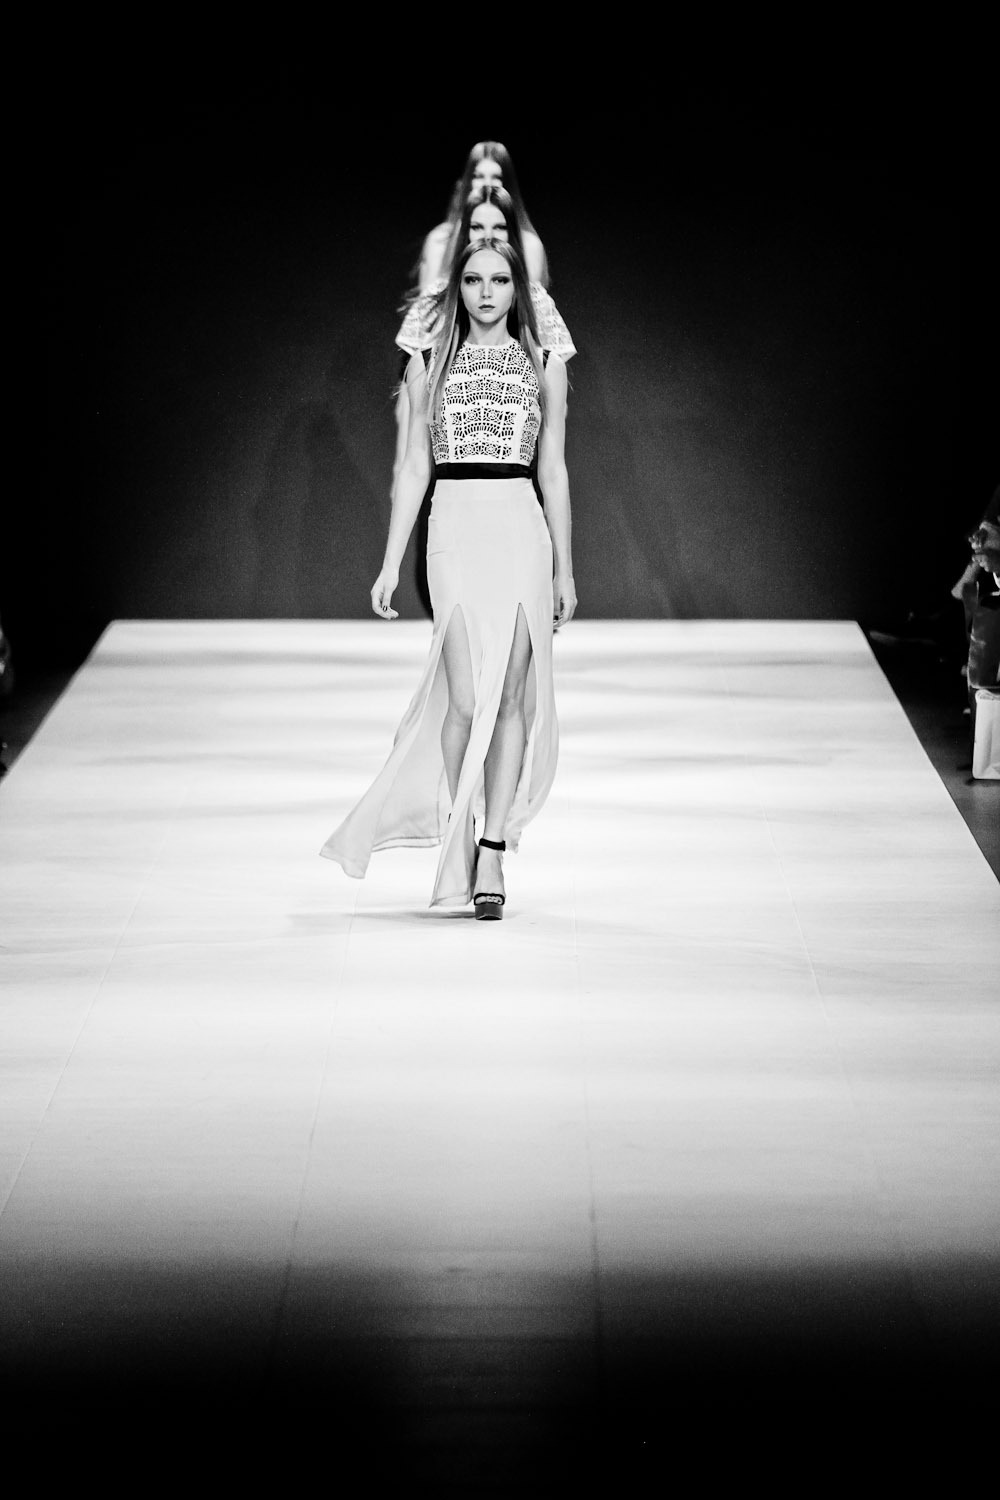 Back home, just in time for Ellery at L'Oreal Melbourne Fashion Festival (LMFF)